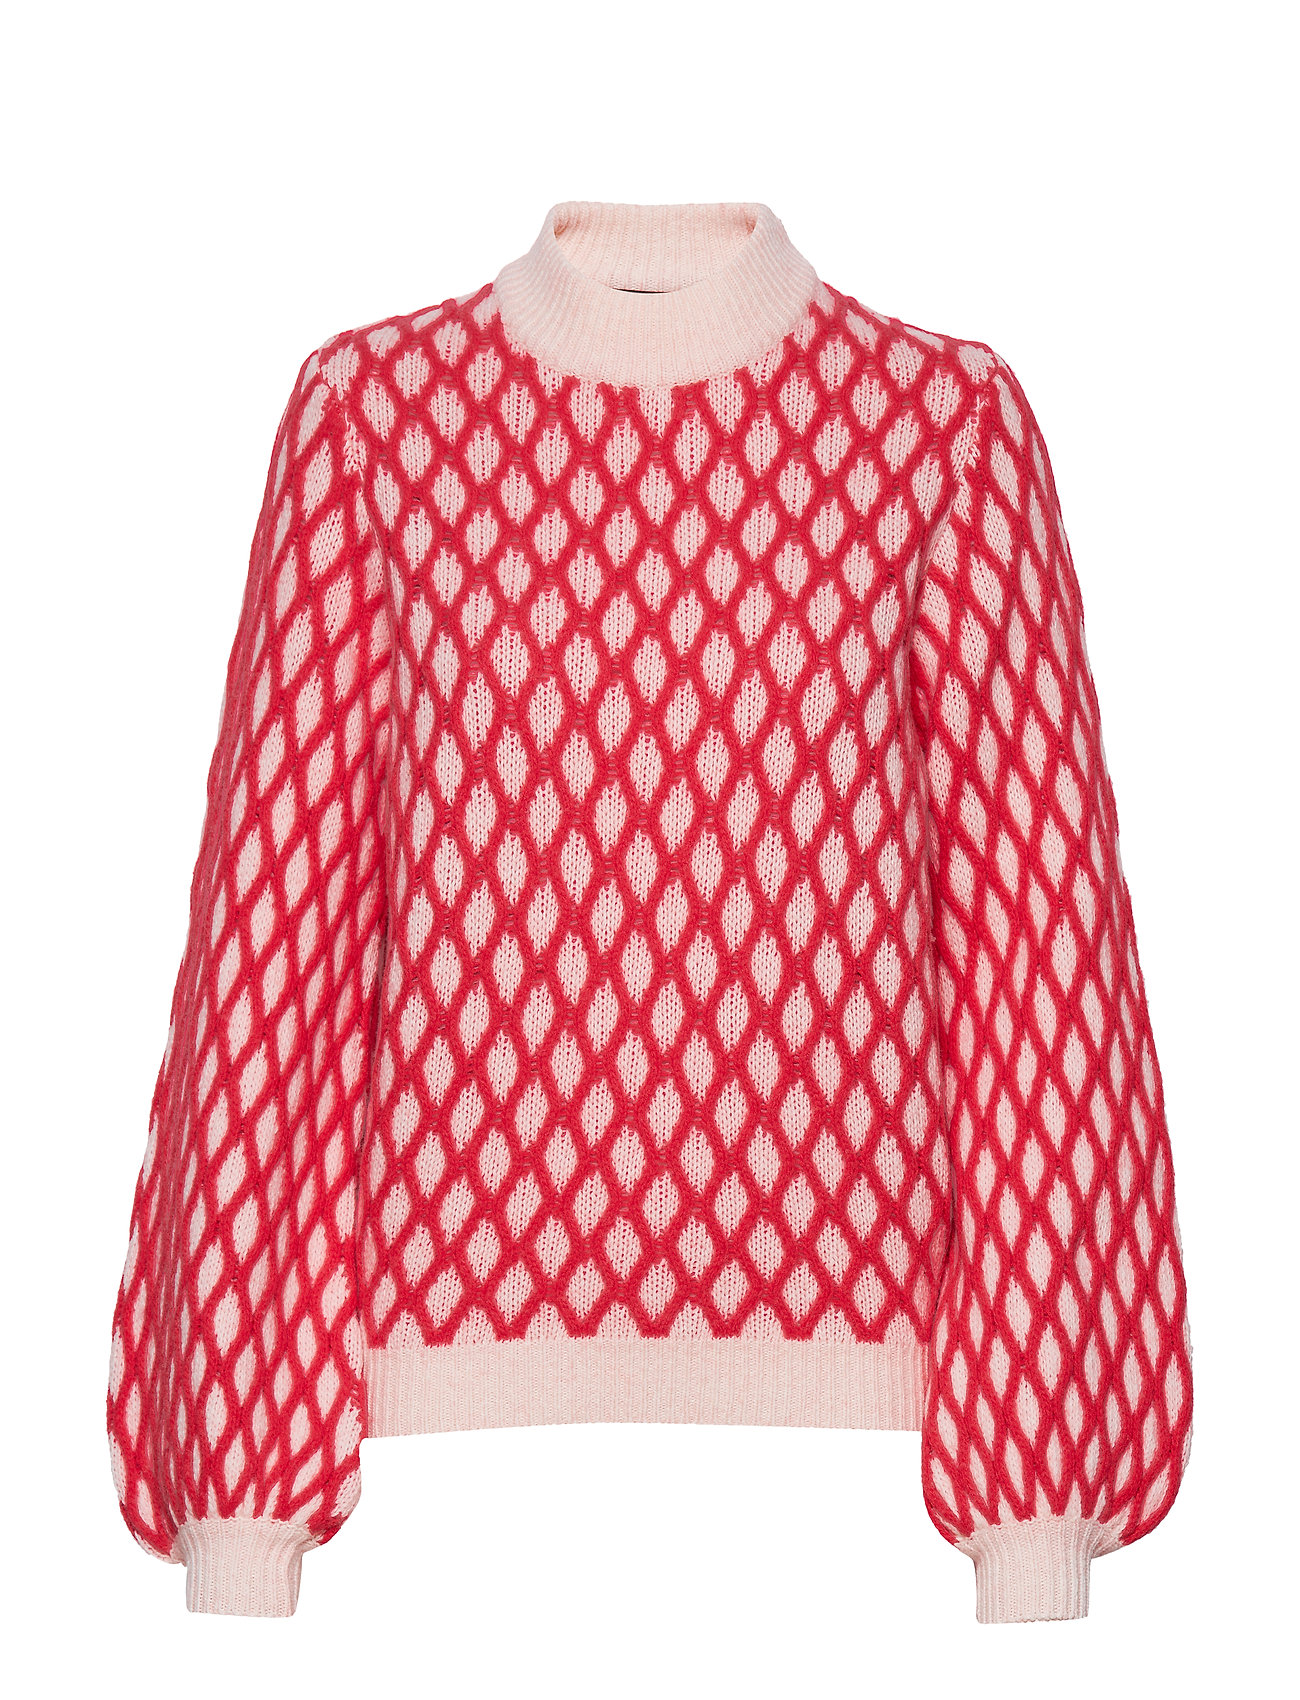 STINE GOYA Carlo, 652 Contrast Cable Knit - RED